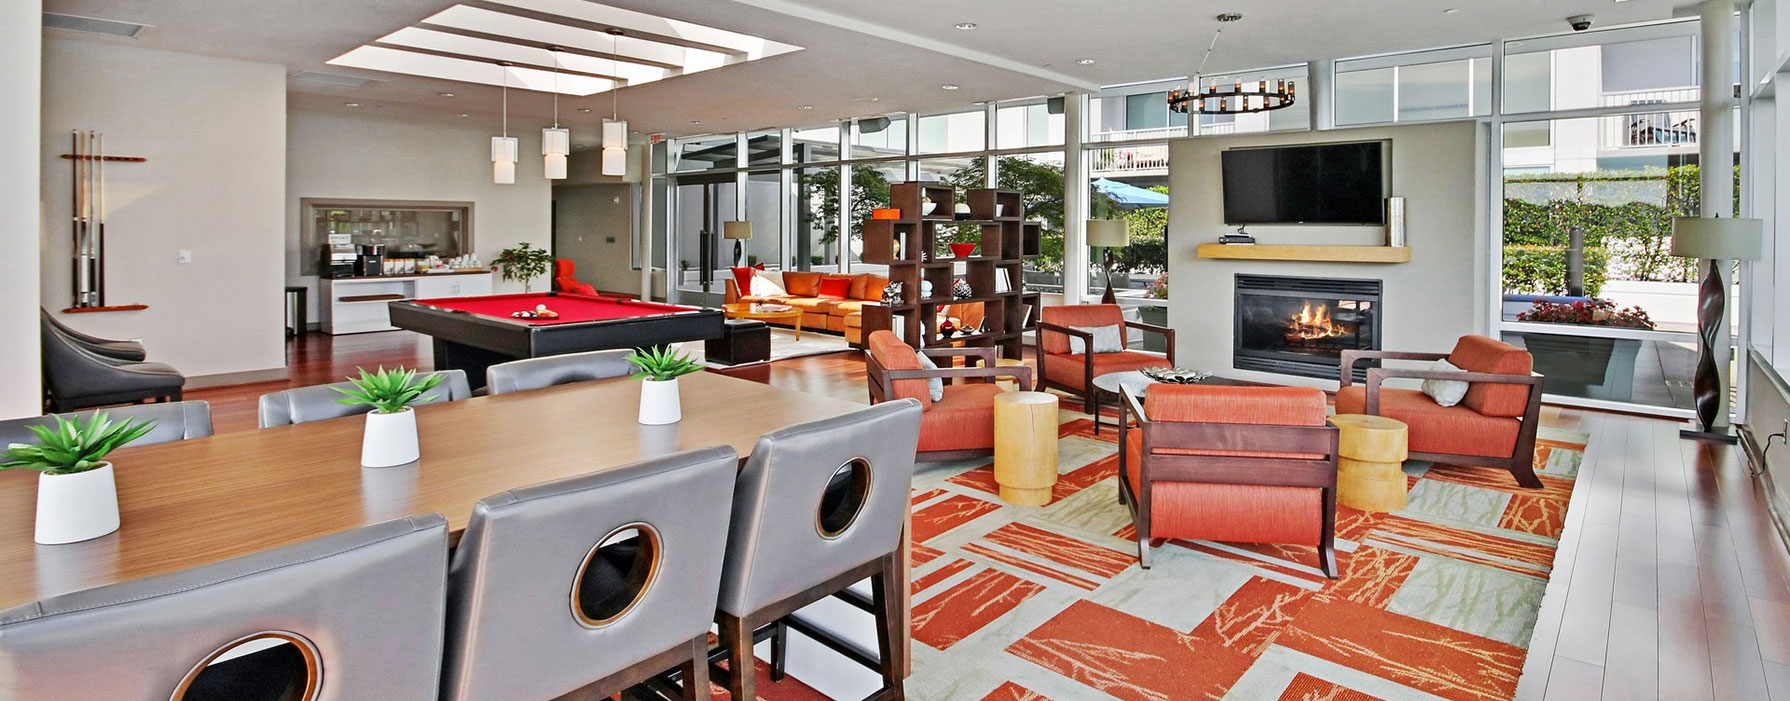 Mezzo Apartments - Atlanta, GA - Clubhouse